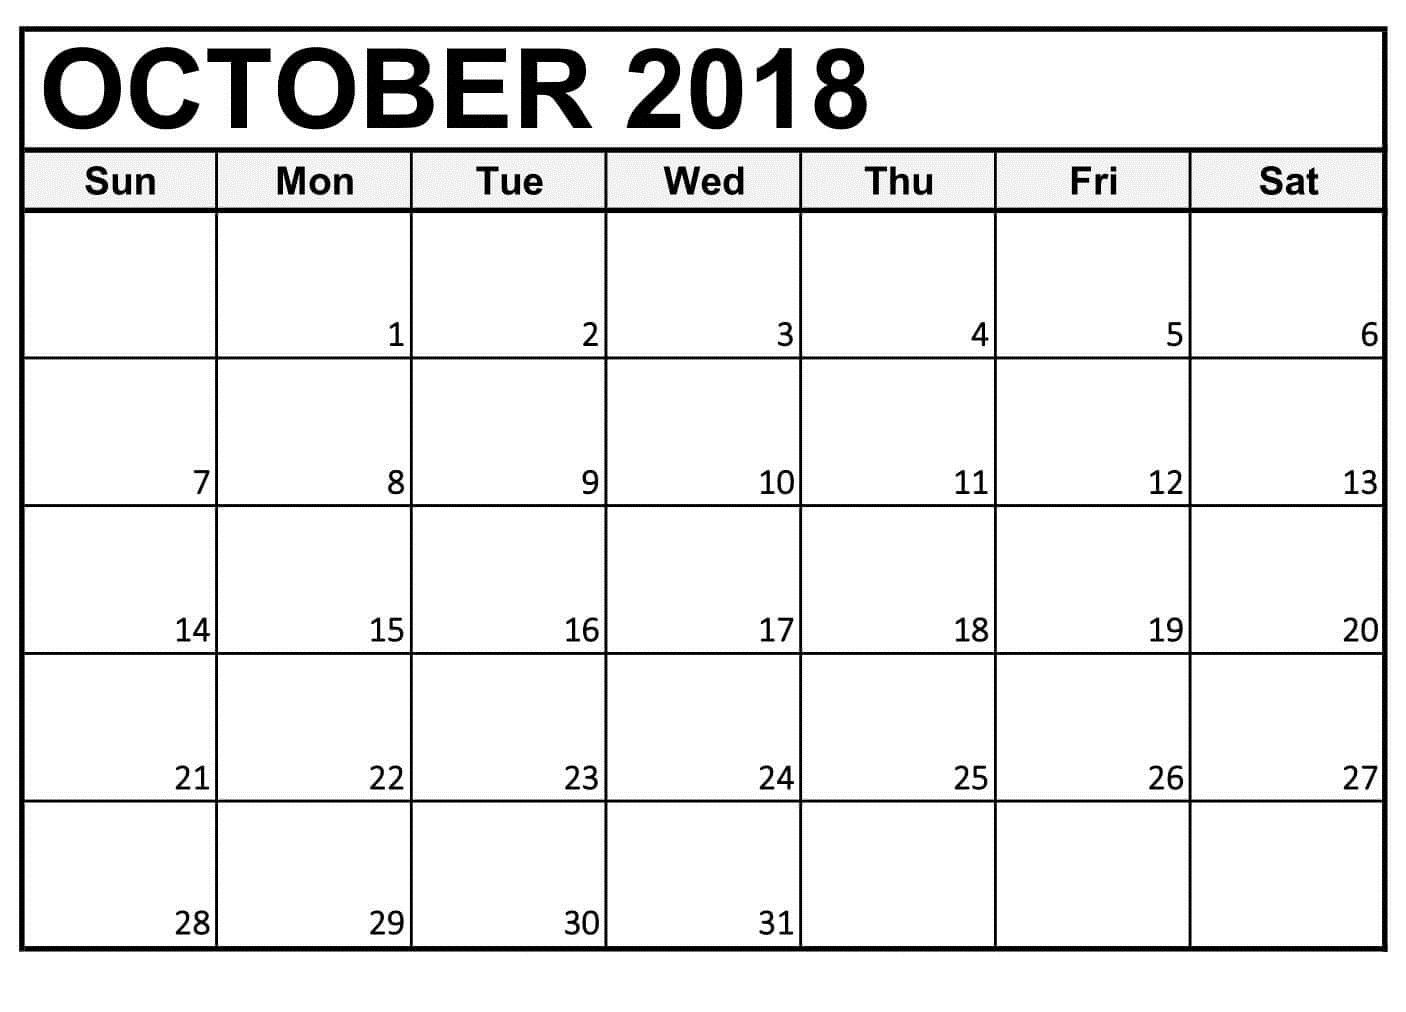 Free Printable Calendar October 2018 Daily Template (With